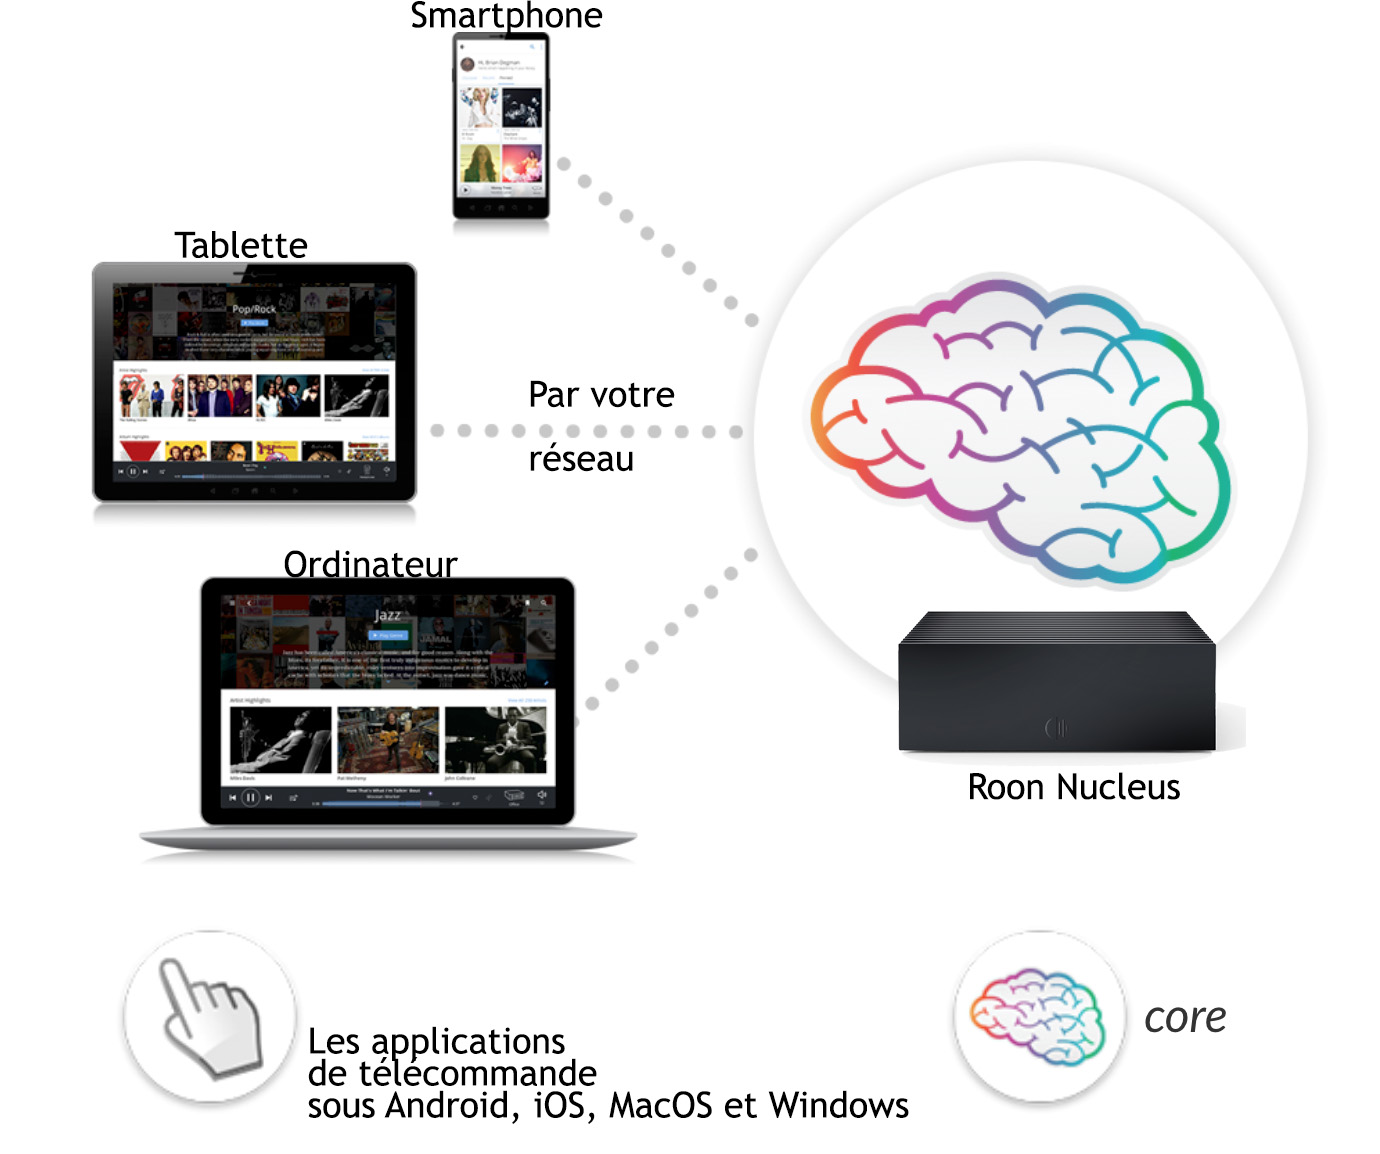 Navigation dans la collection musicale depuis un iPhone, iPad, appareil Android ou un ordinateur sous MacOs / Windows